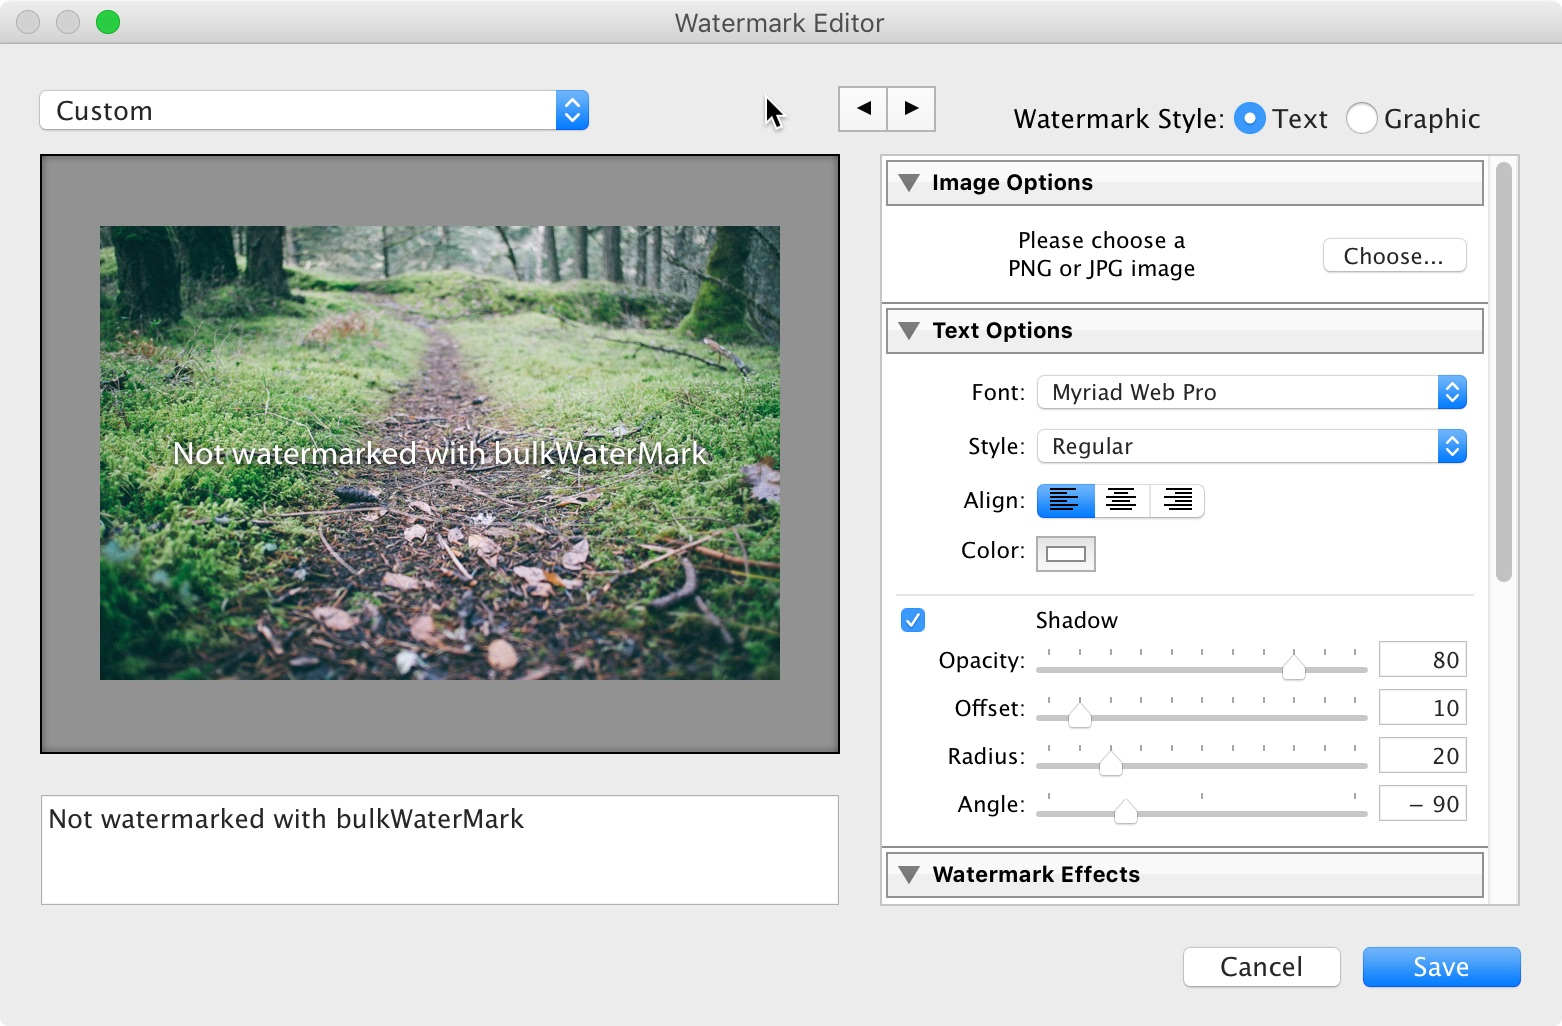 Export and watermark your photos in Photoshop